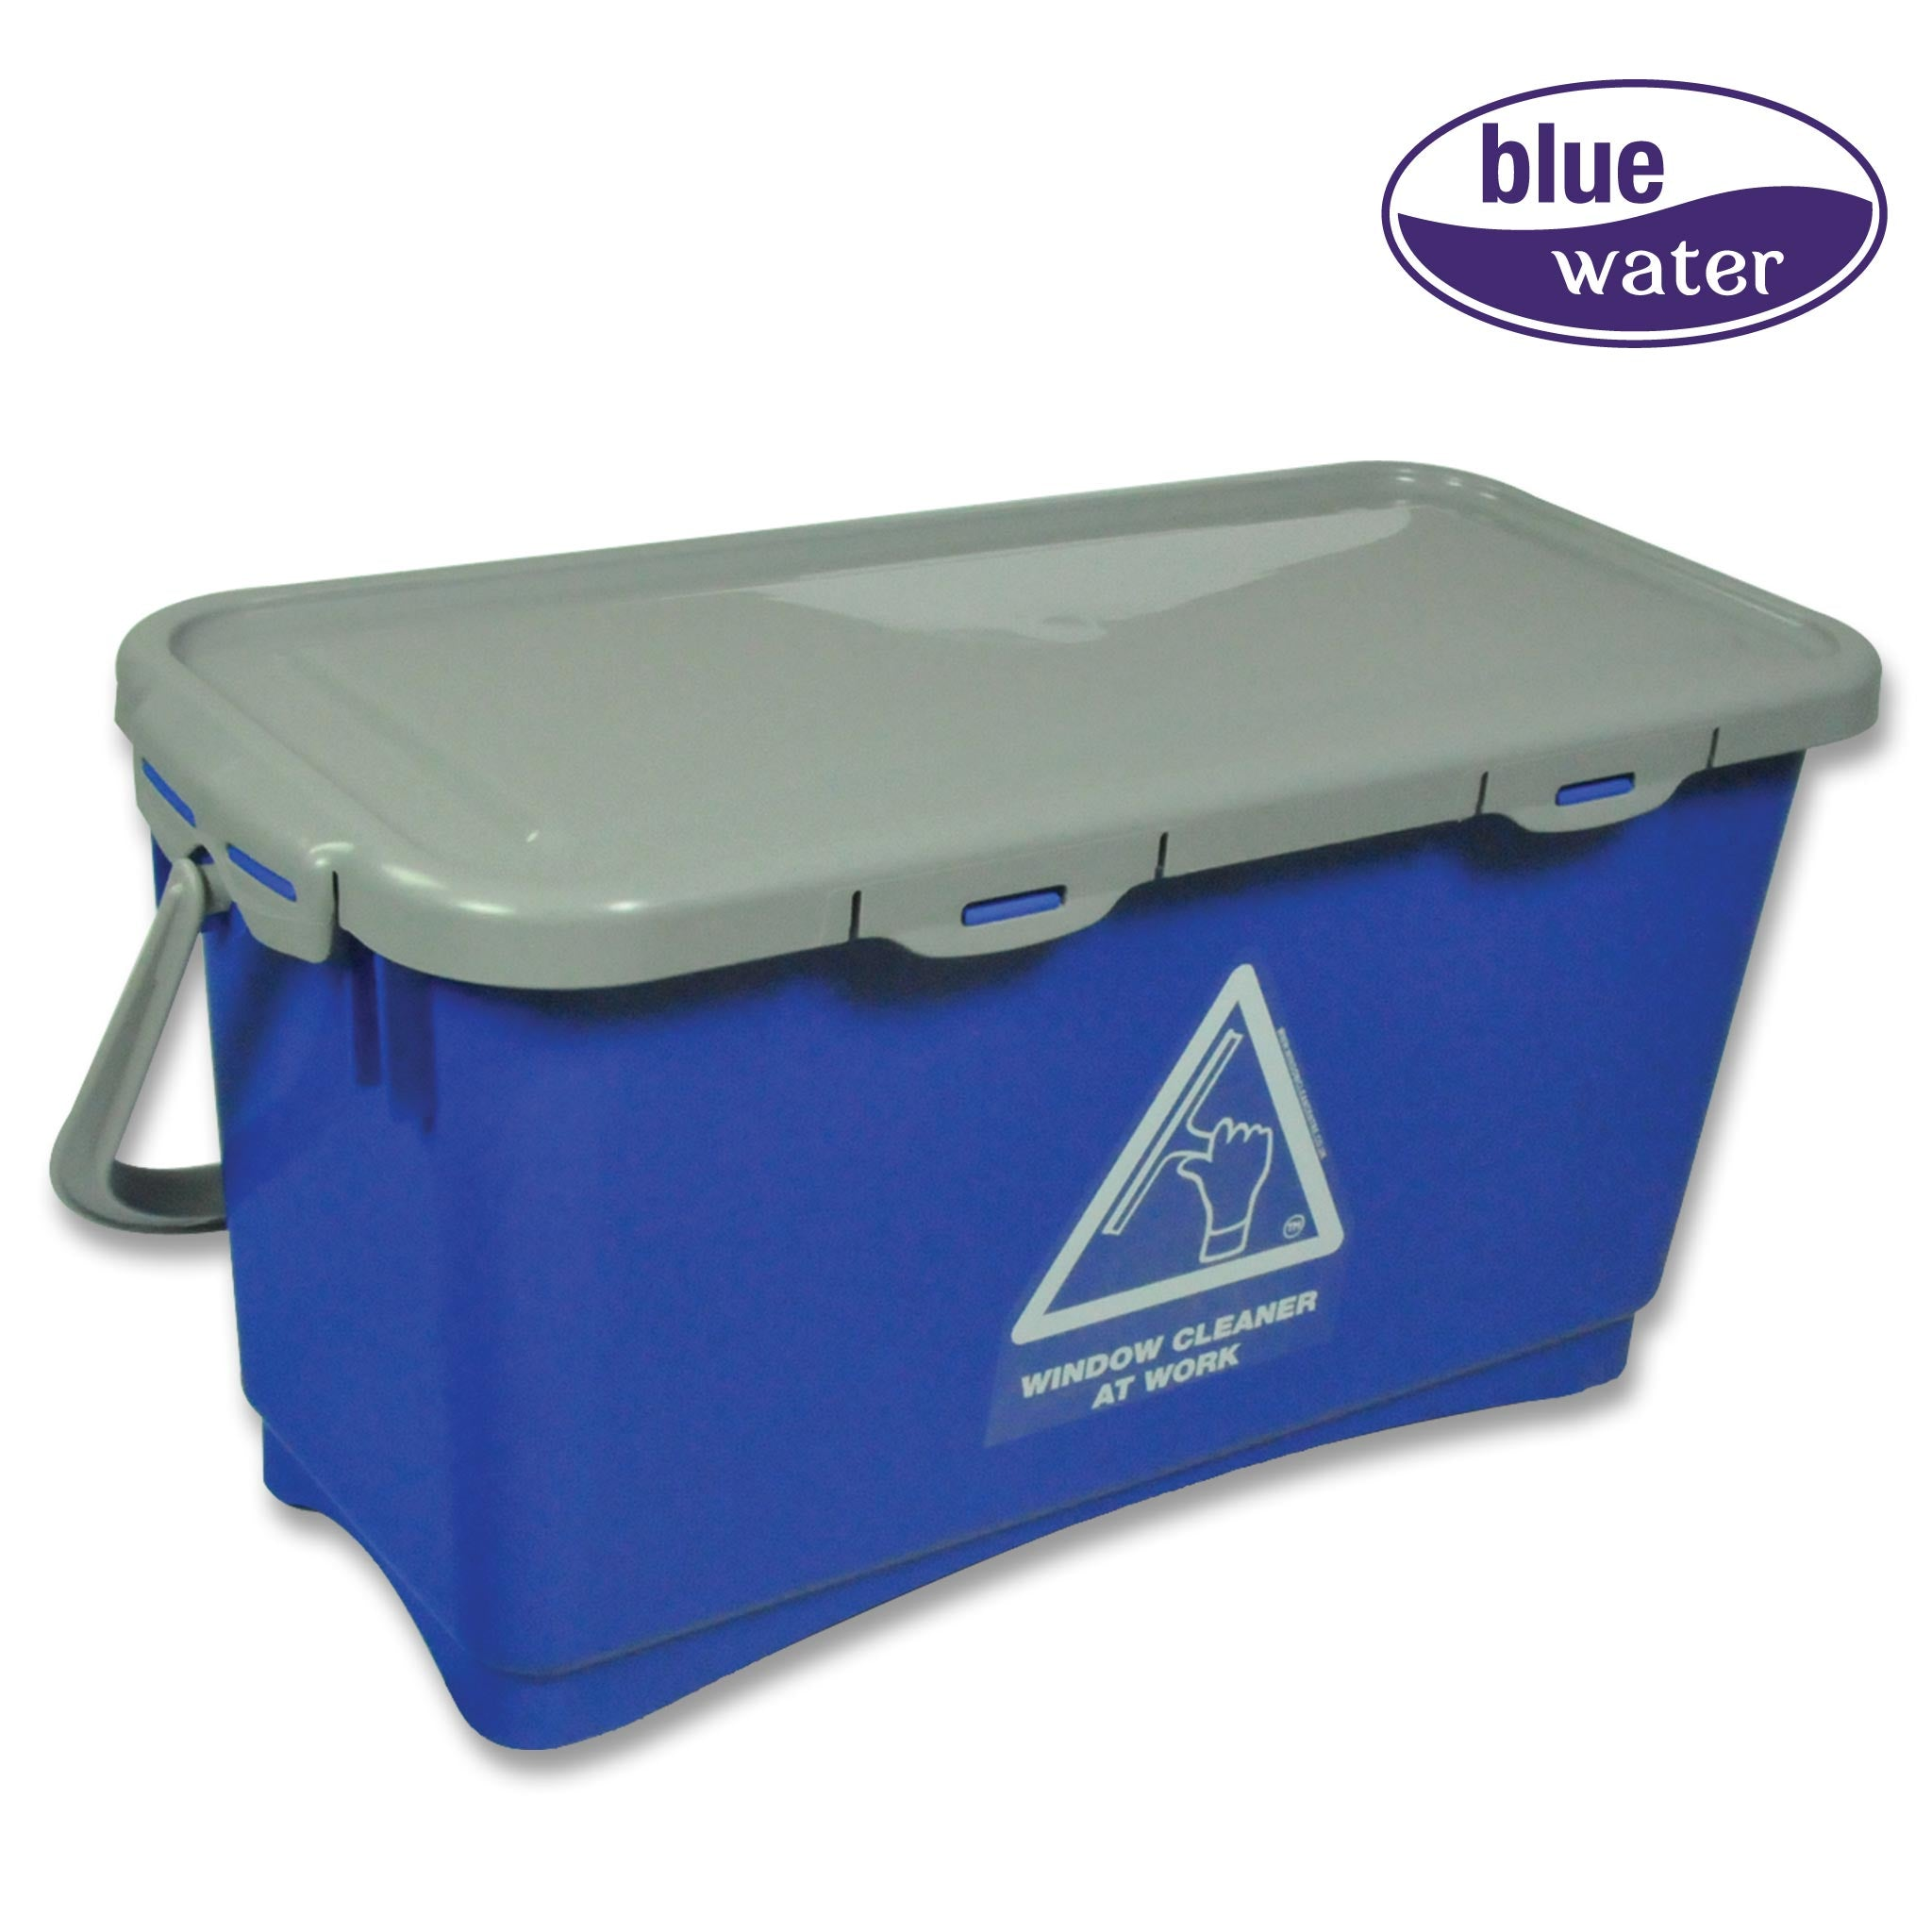 Bluewater Bucket and Lid - 20 Litre